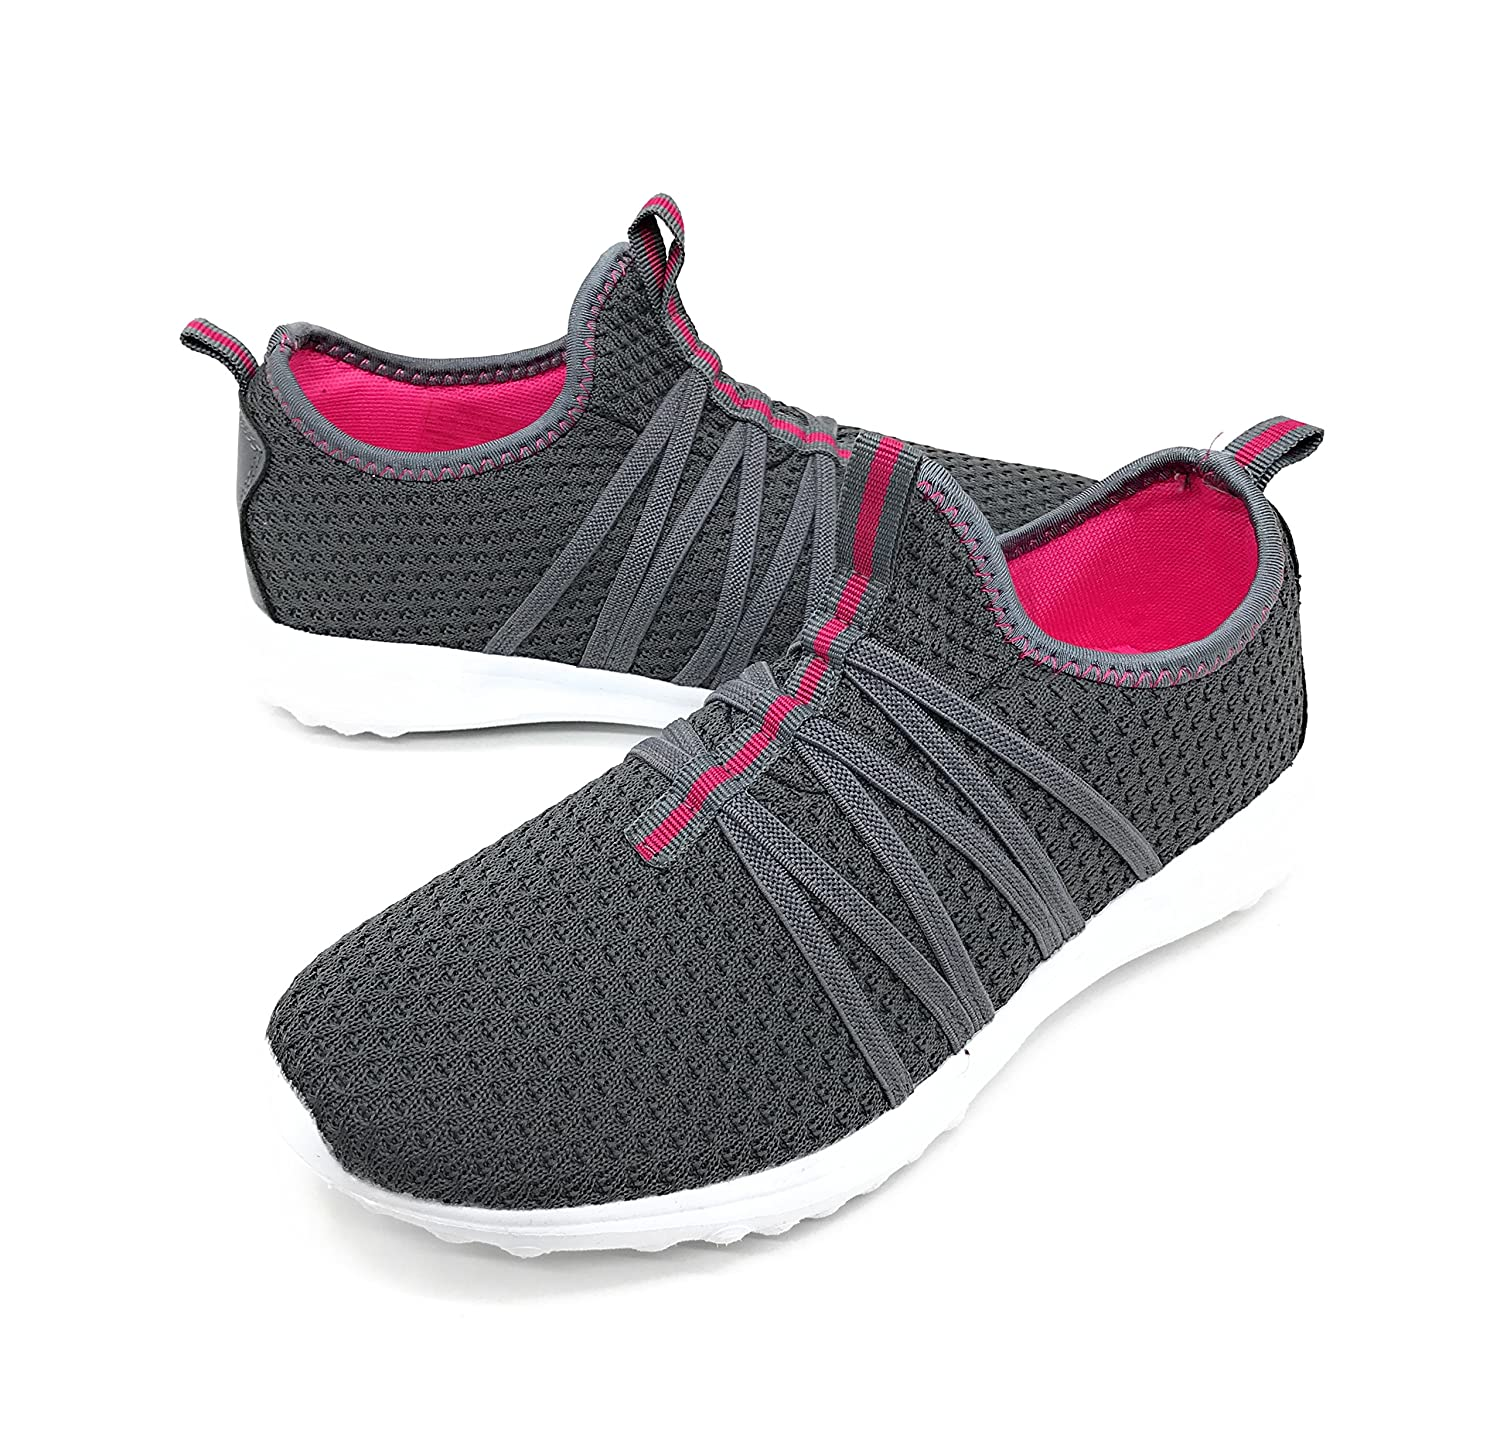 Blue Berry EASY21 Women Casual Fashion Sneakers Breathable Athletic Sports Light Weight Shoes B079VXLTT7 10 B(M) US|Grey01